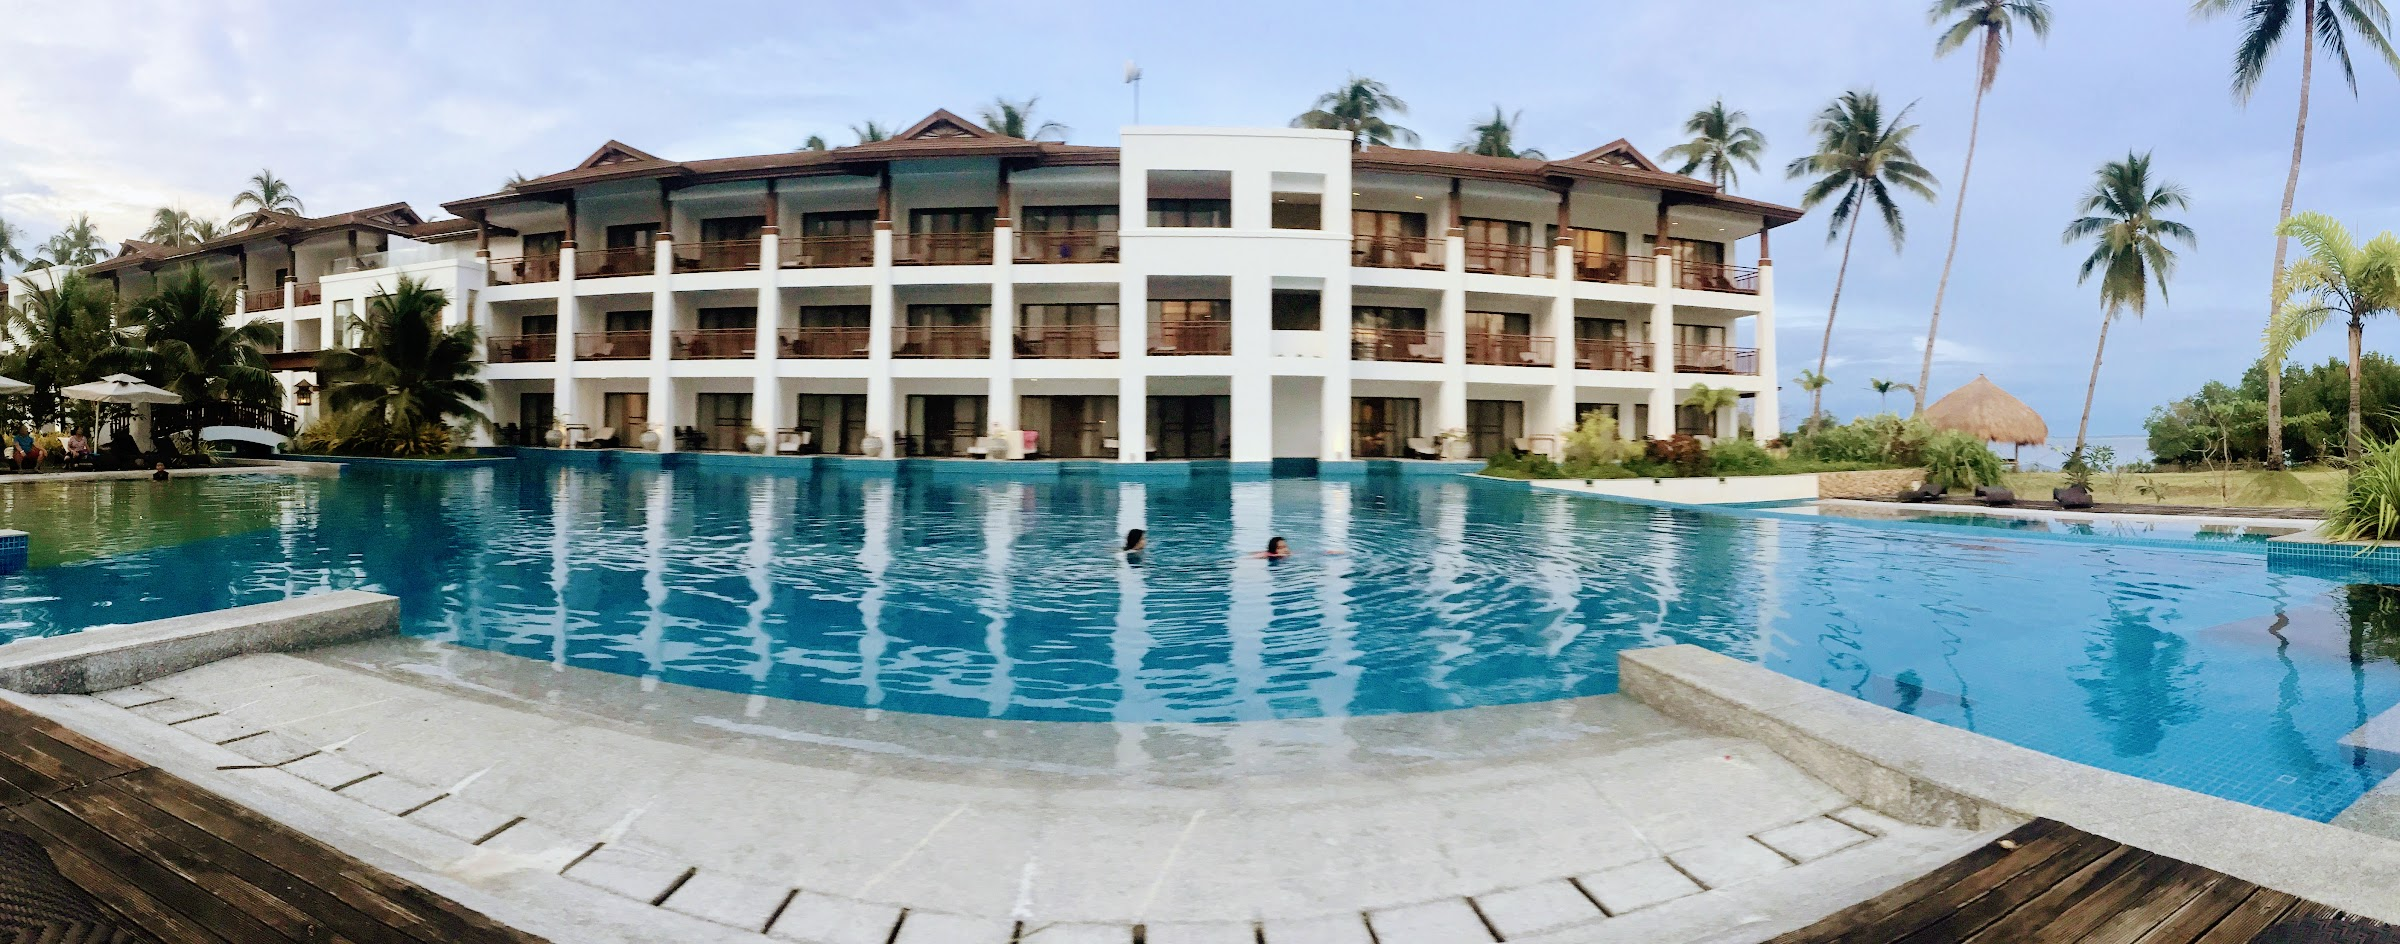 Princesa Garden Resort and Spa Palawan